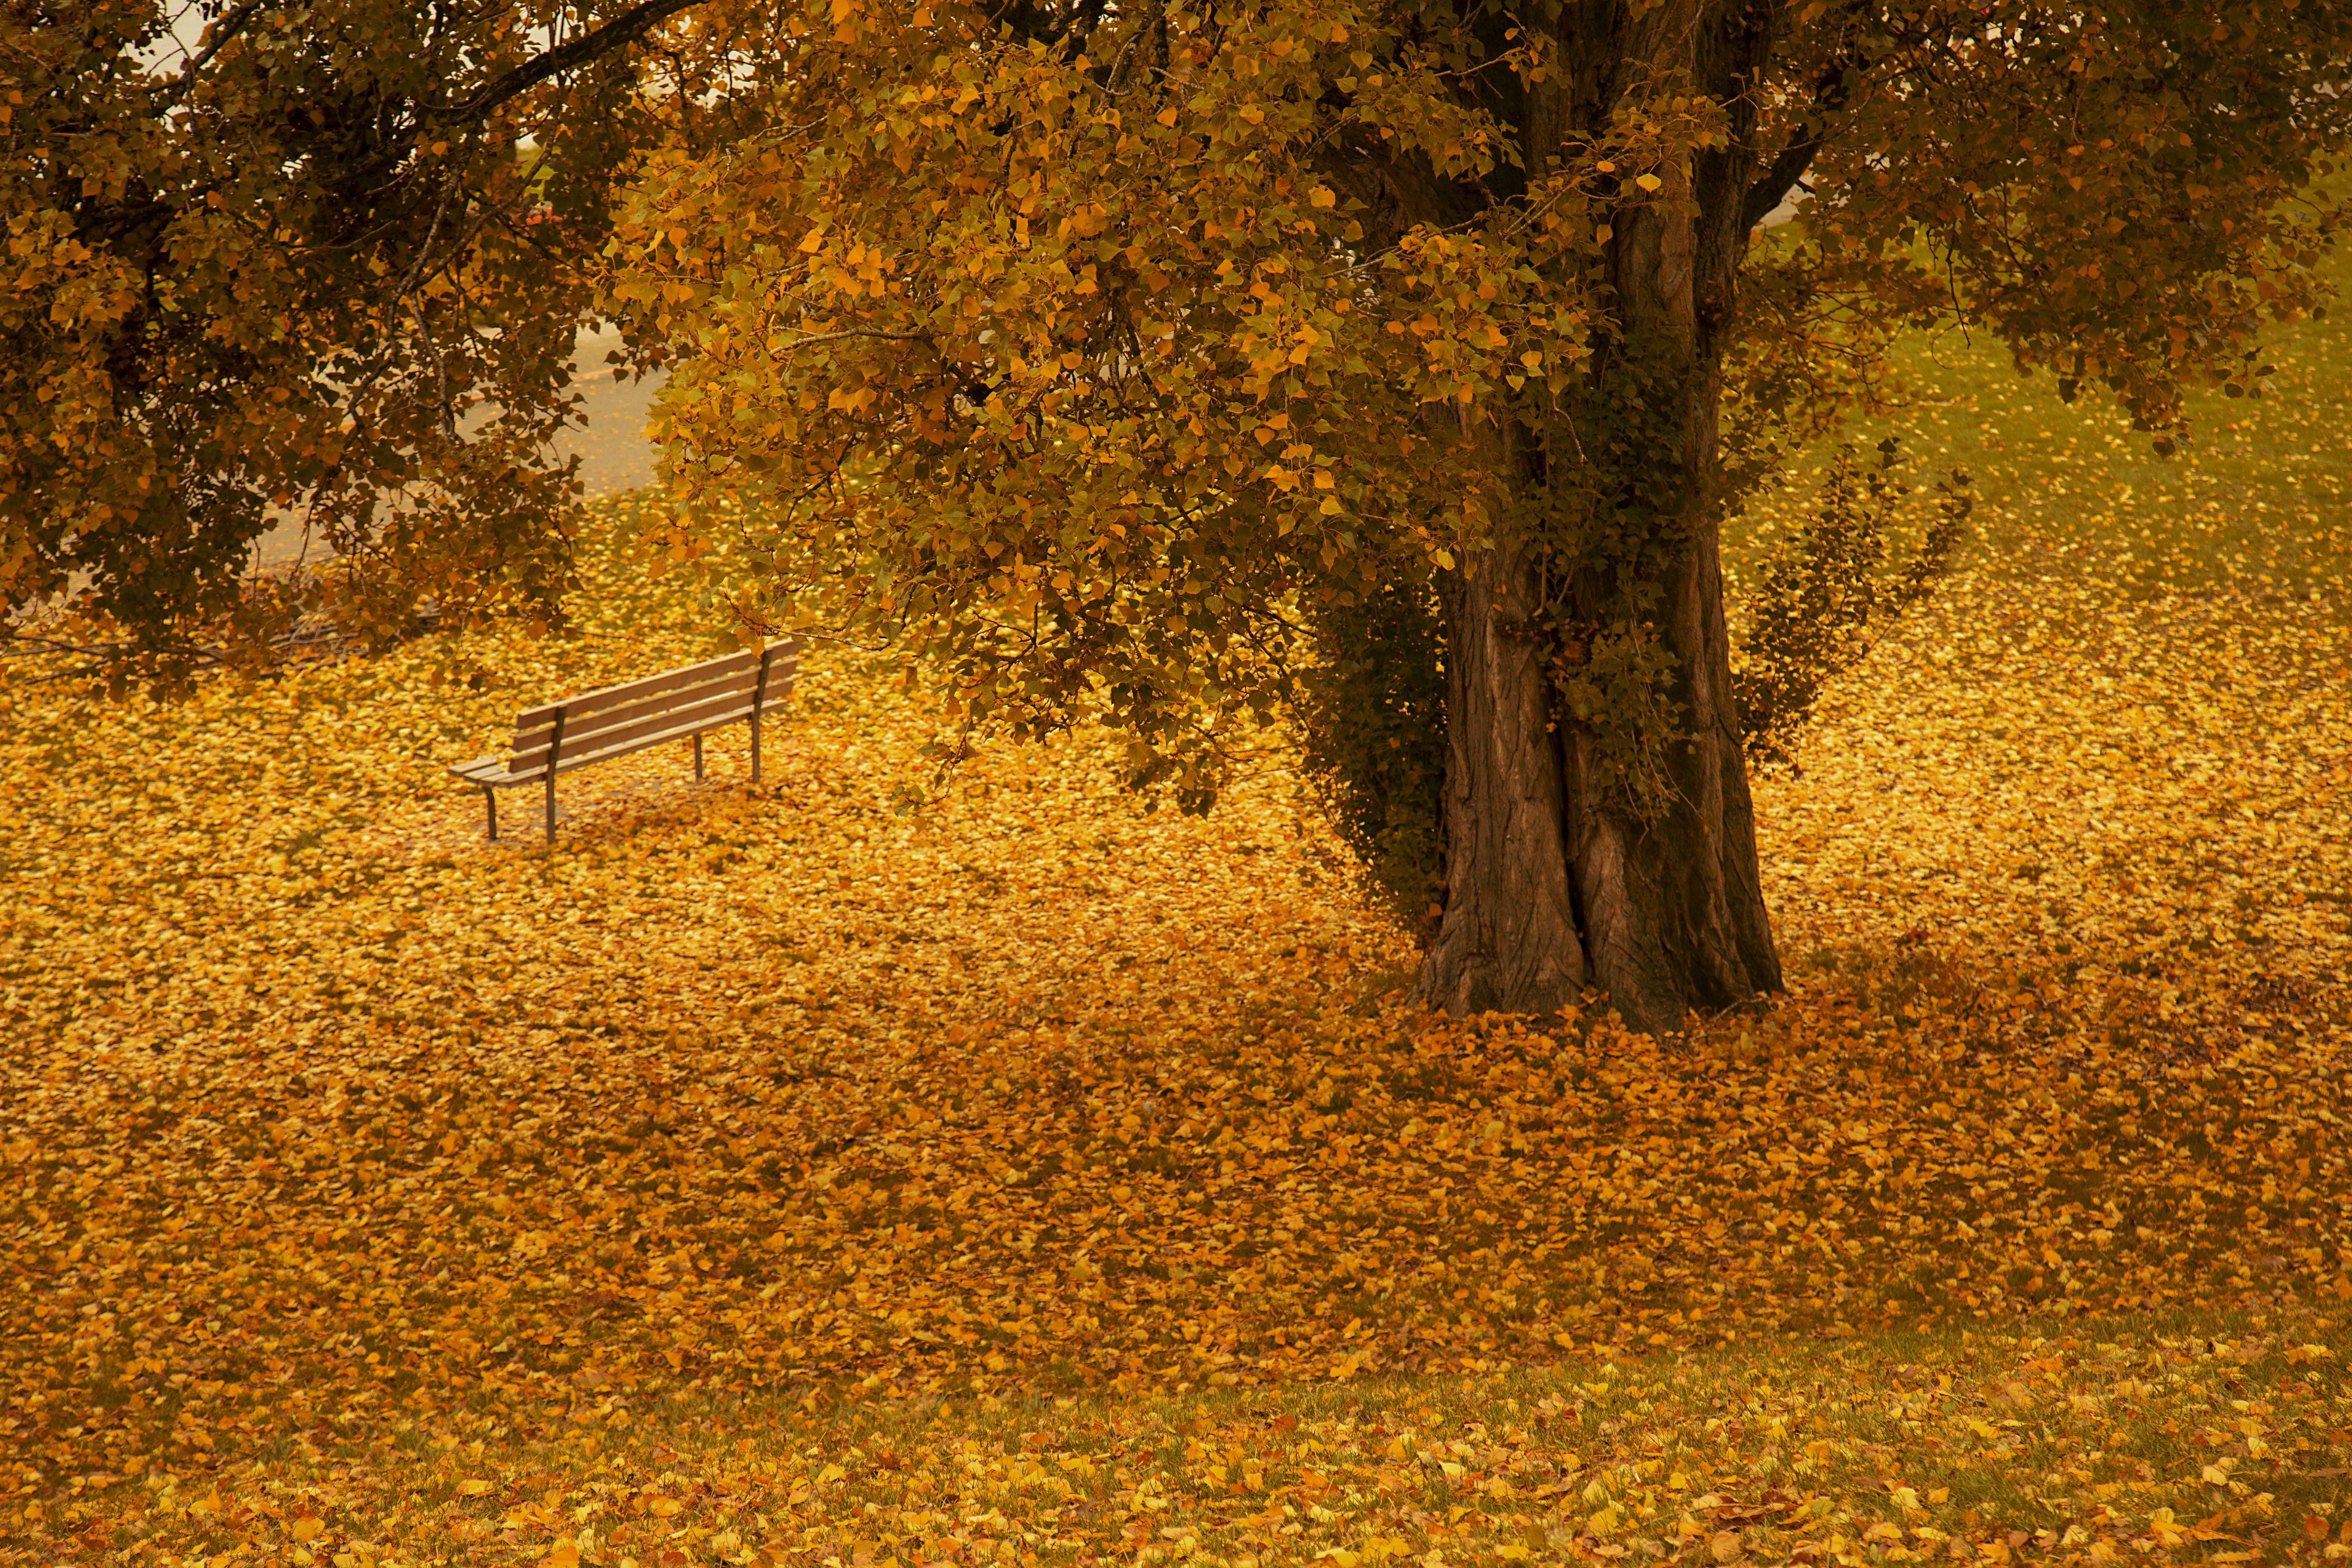 Free stock photo of park, autumn, fall, autumn leaves